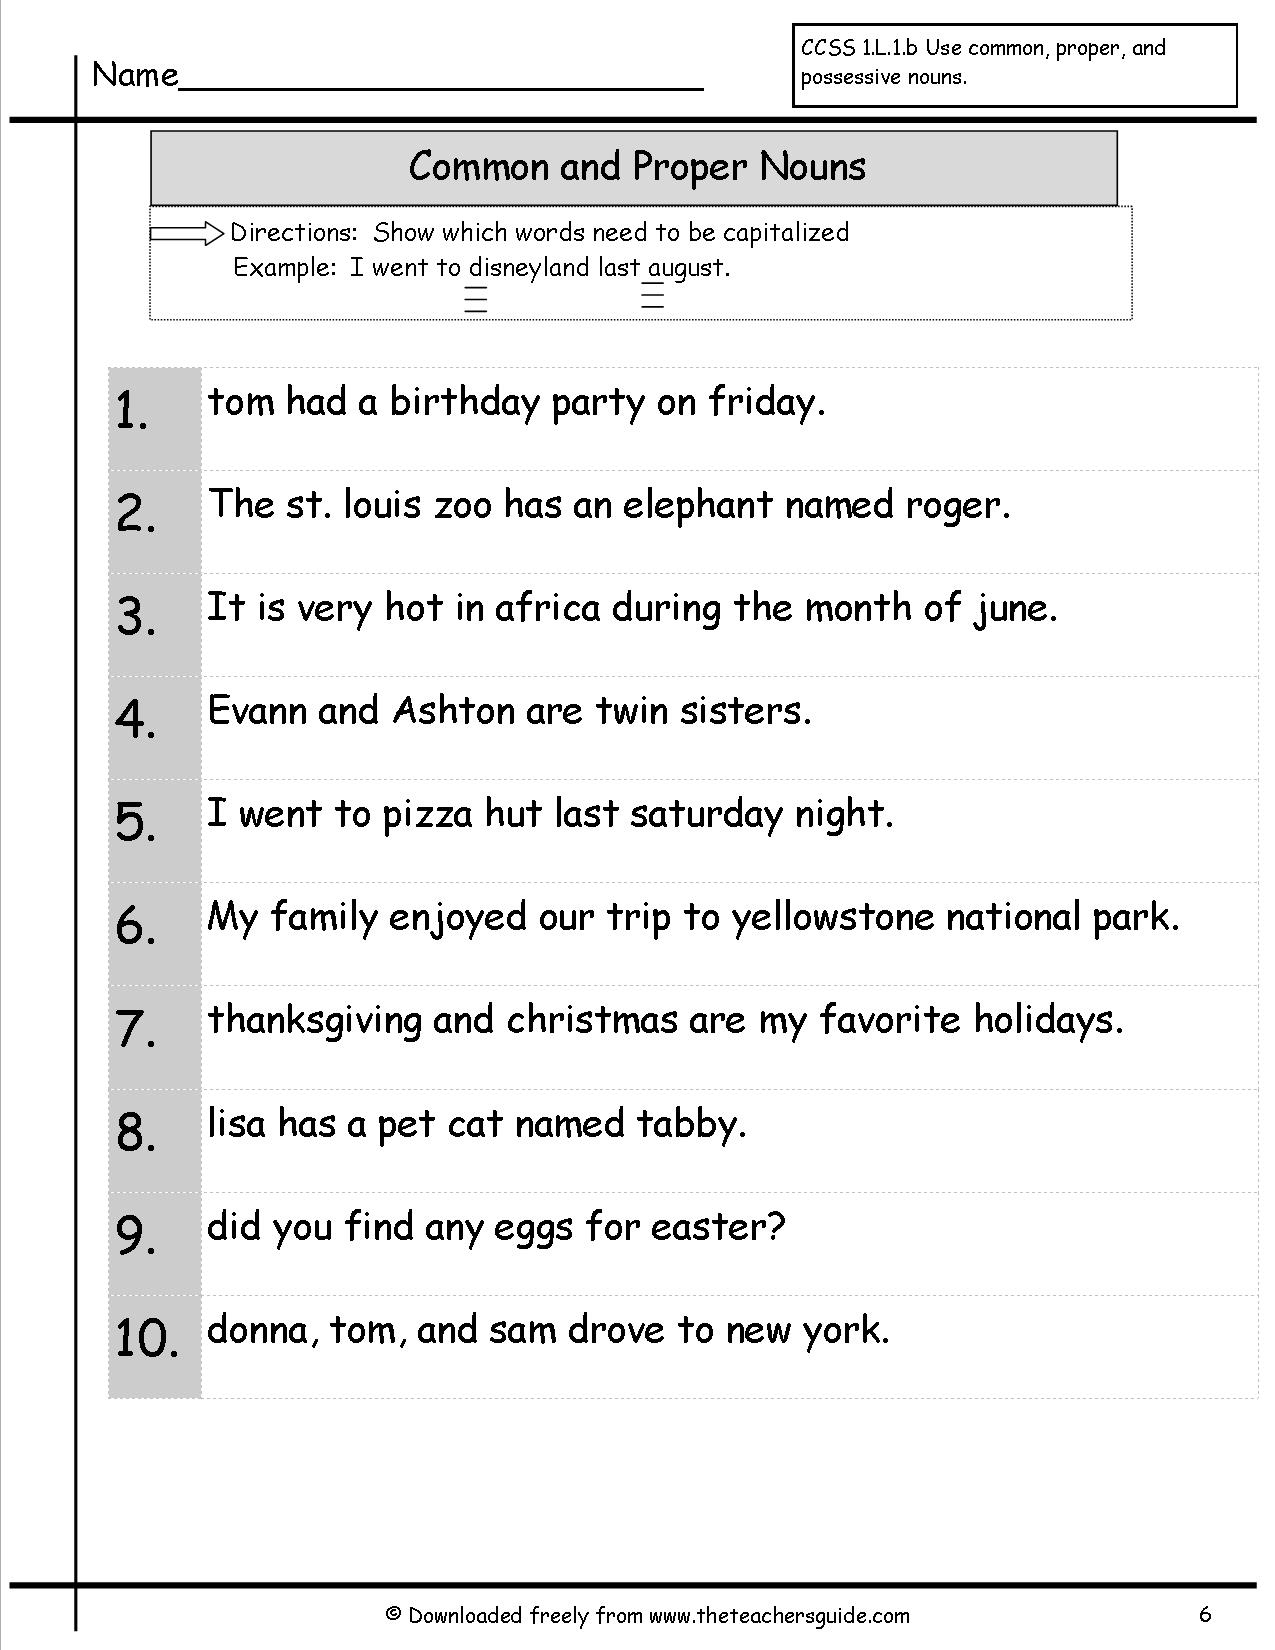 Common And Proper Nouns Worksheets From The Teacher S